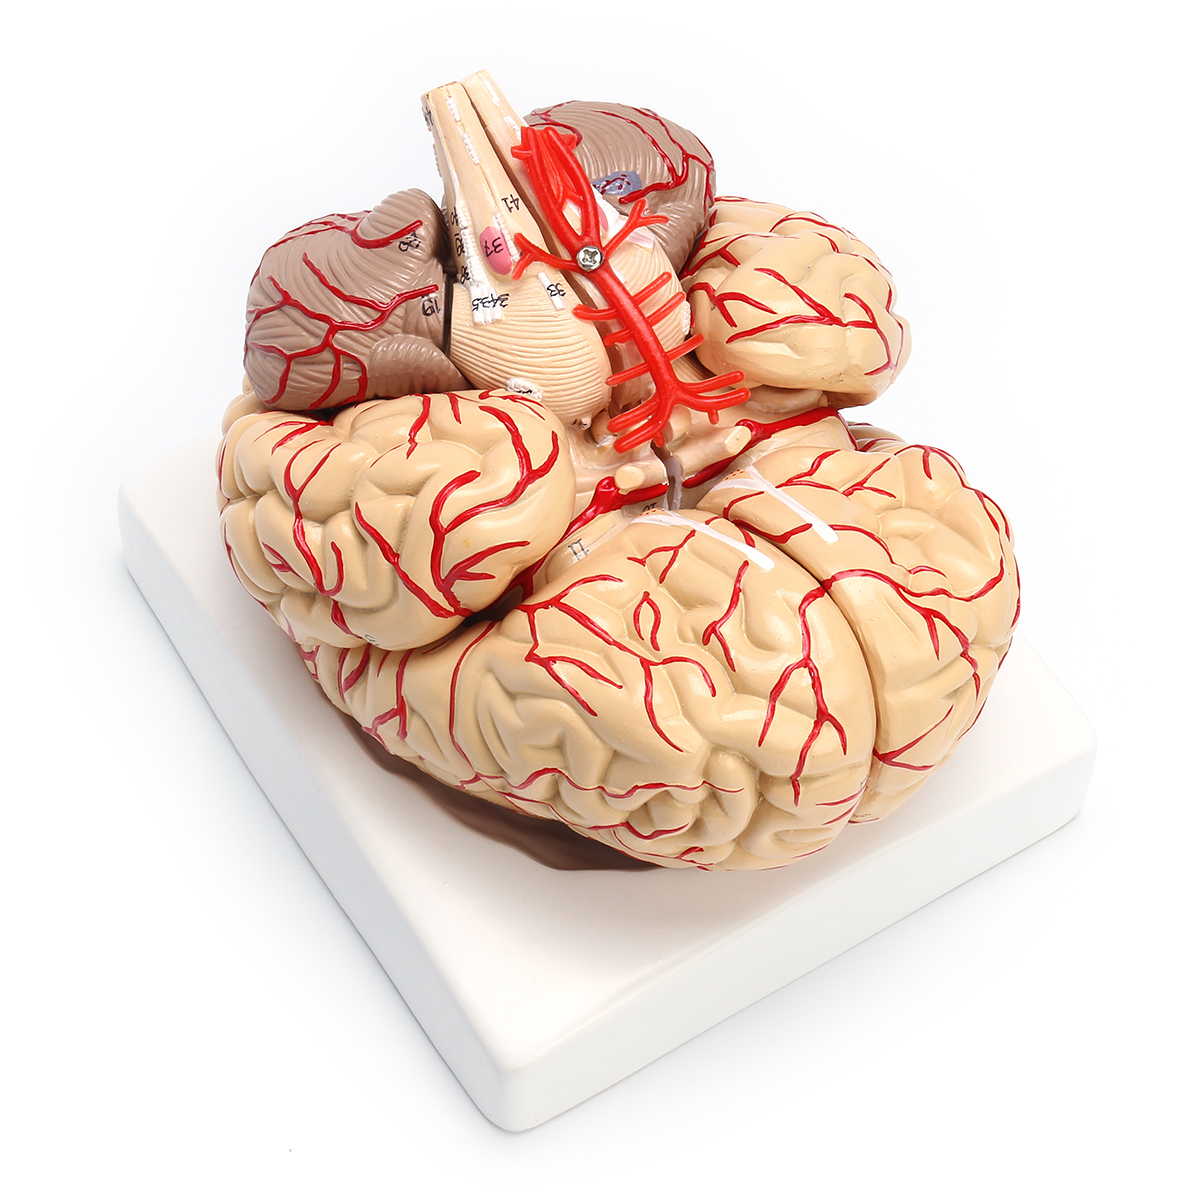 1:1 Life Size Scientific Human Brain Arteries Anatomical Model Pro Dissection Medical Teaching Model